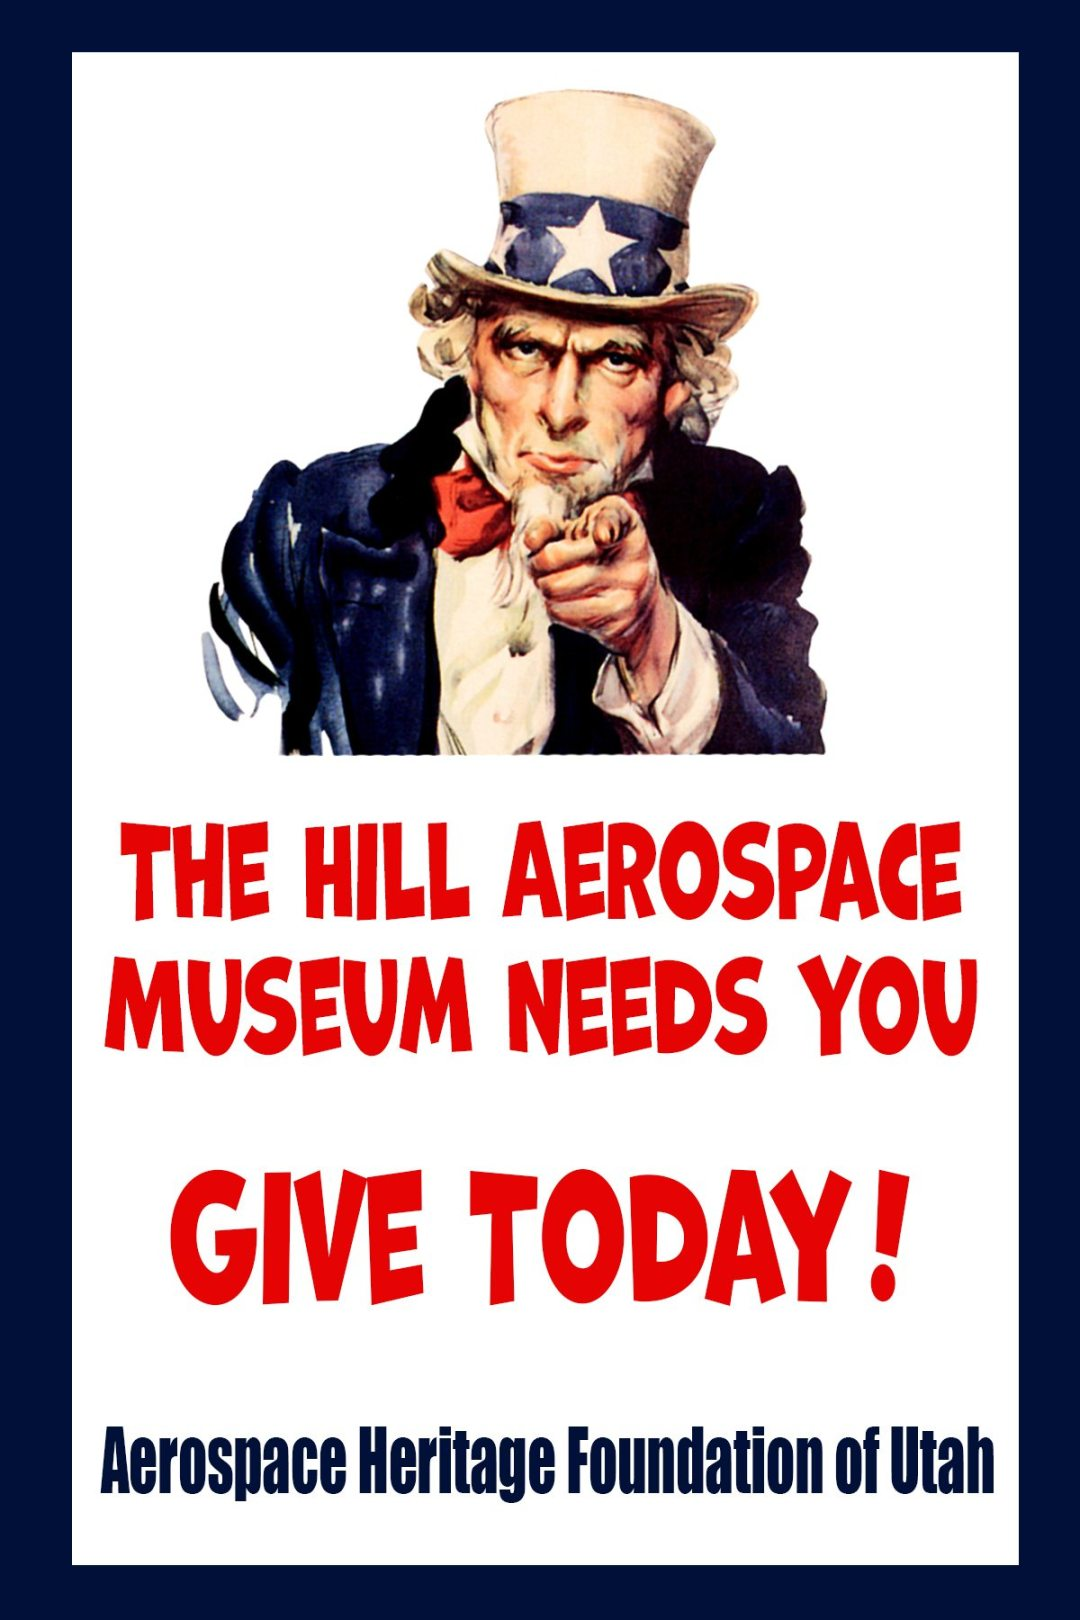 We Want You to give to the Museum!